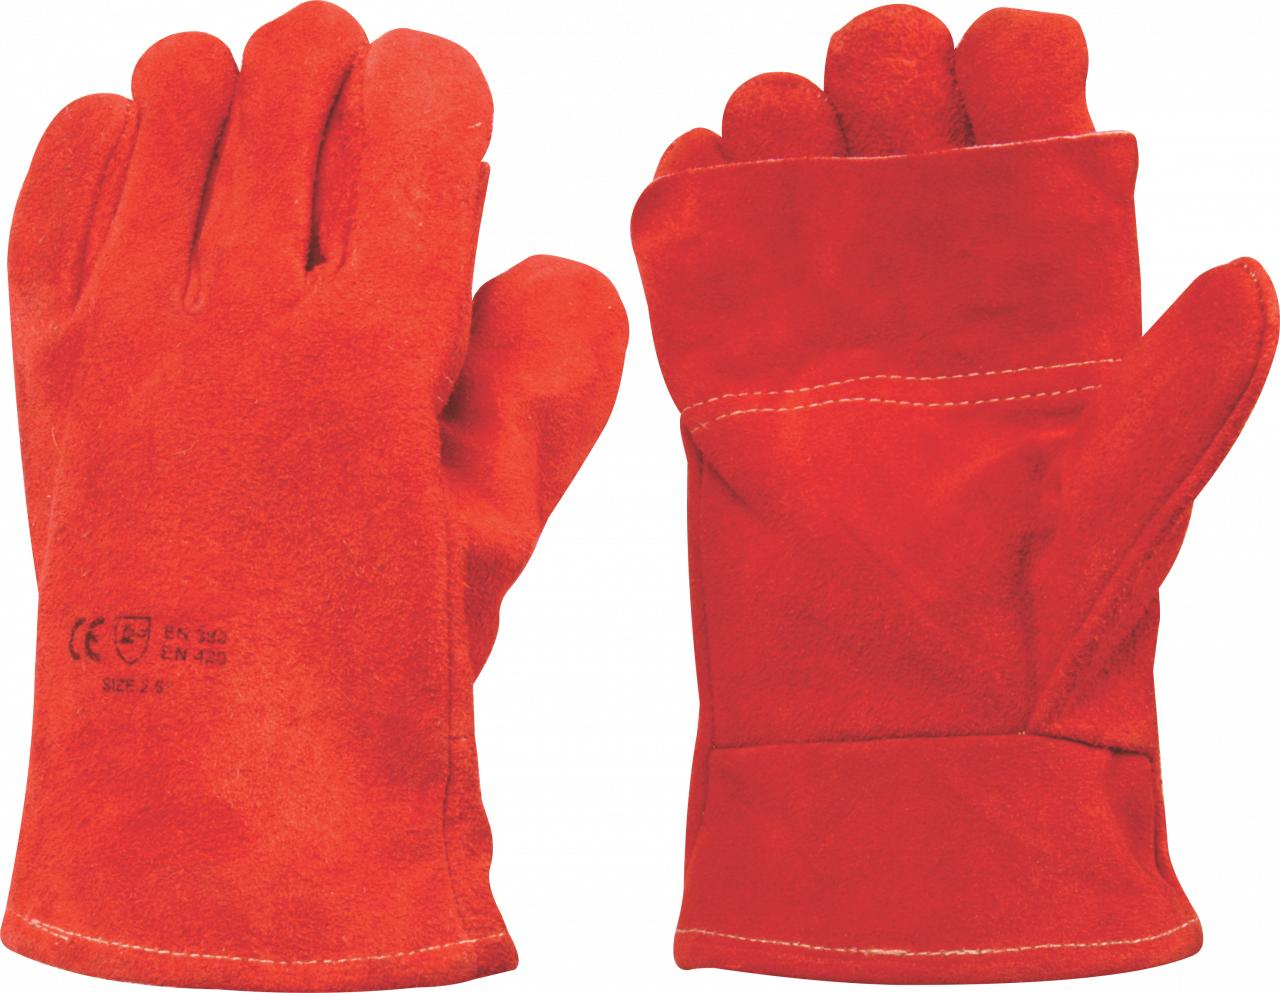 Leather Glove Heat Red Cuff 8 inch